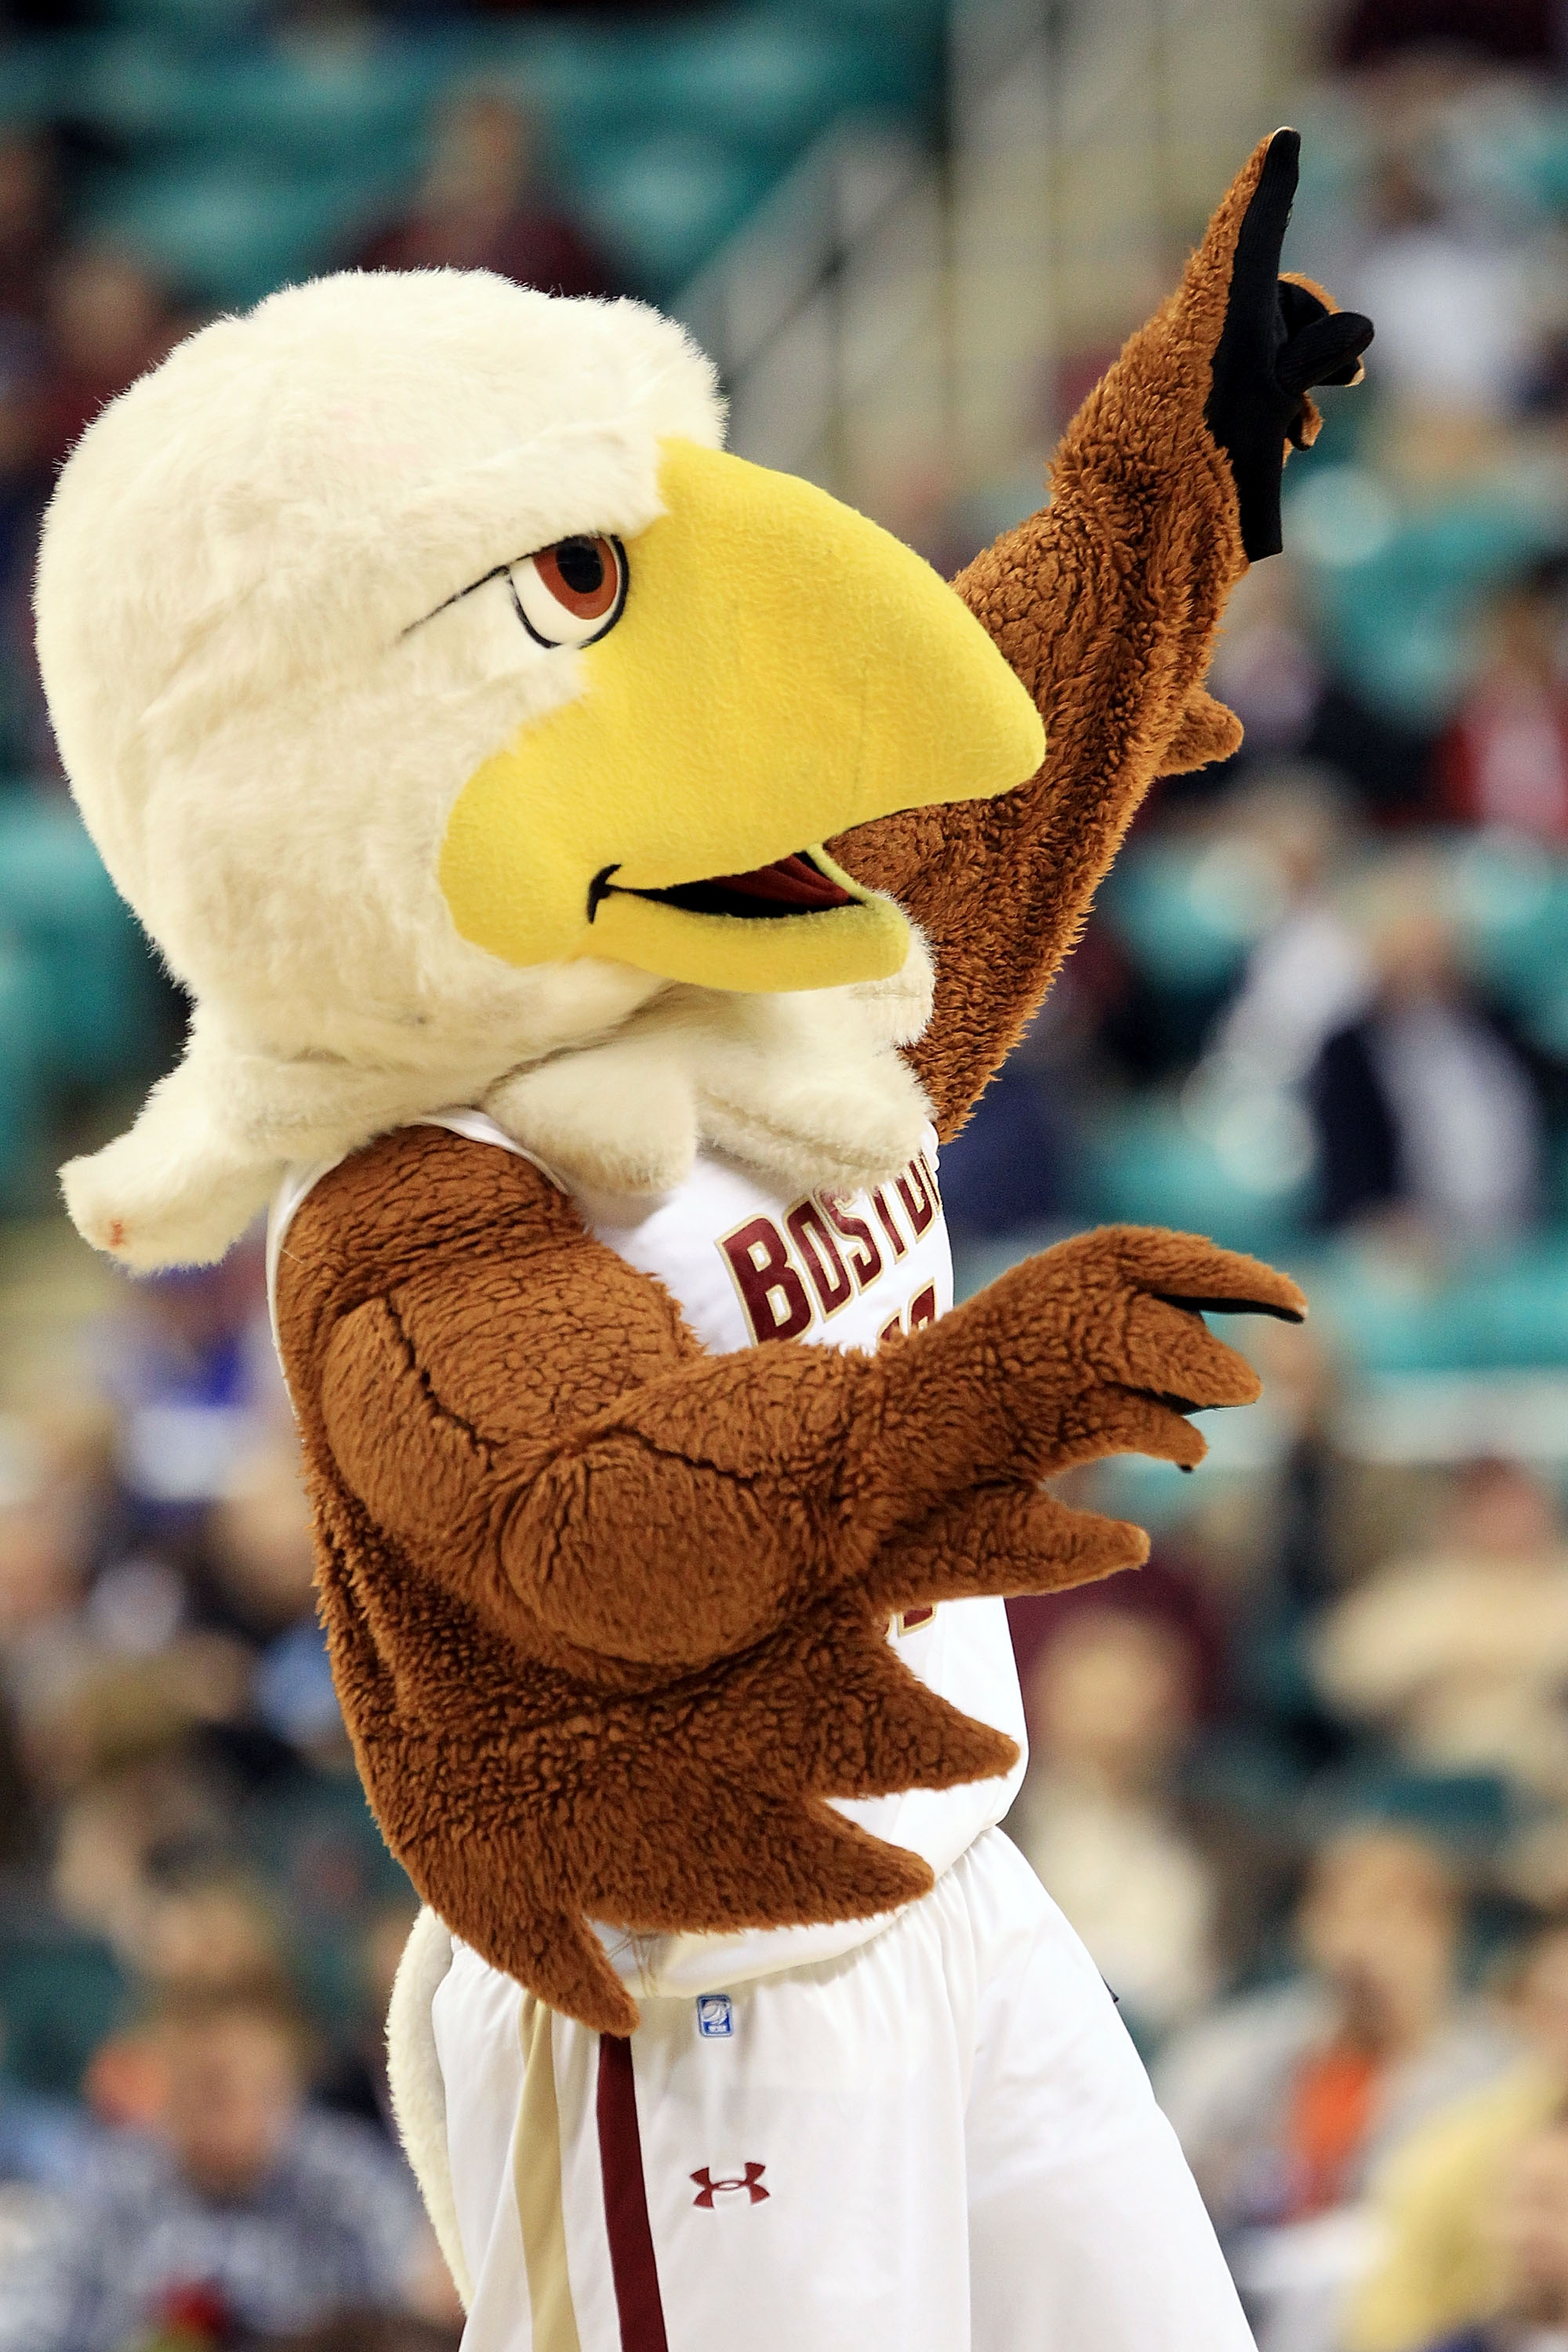 GREENSBORO, NC - MARCH 10:  Baldwin the Eagle, mascot of the Boston College Eagles, performs during the game against the Wake Forest Demon Deacons during the second half of the game in the first round of the 2011 ACC men's basketball tournament at the Gre